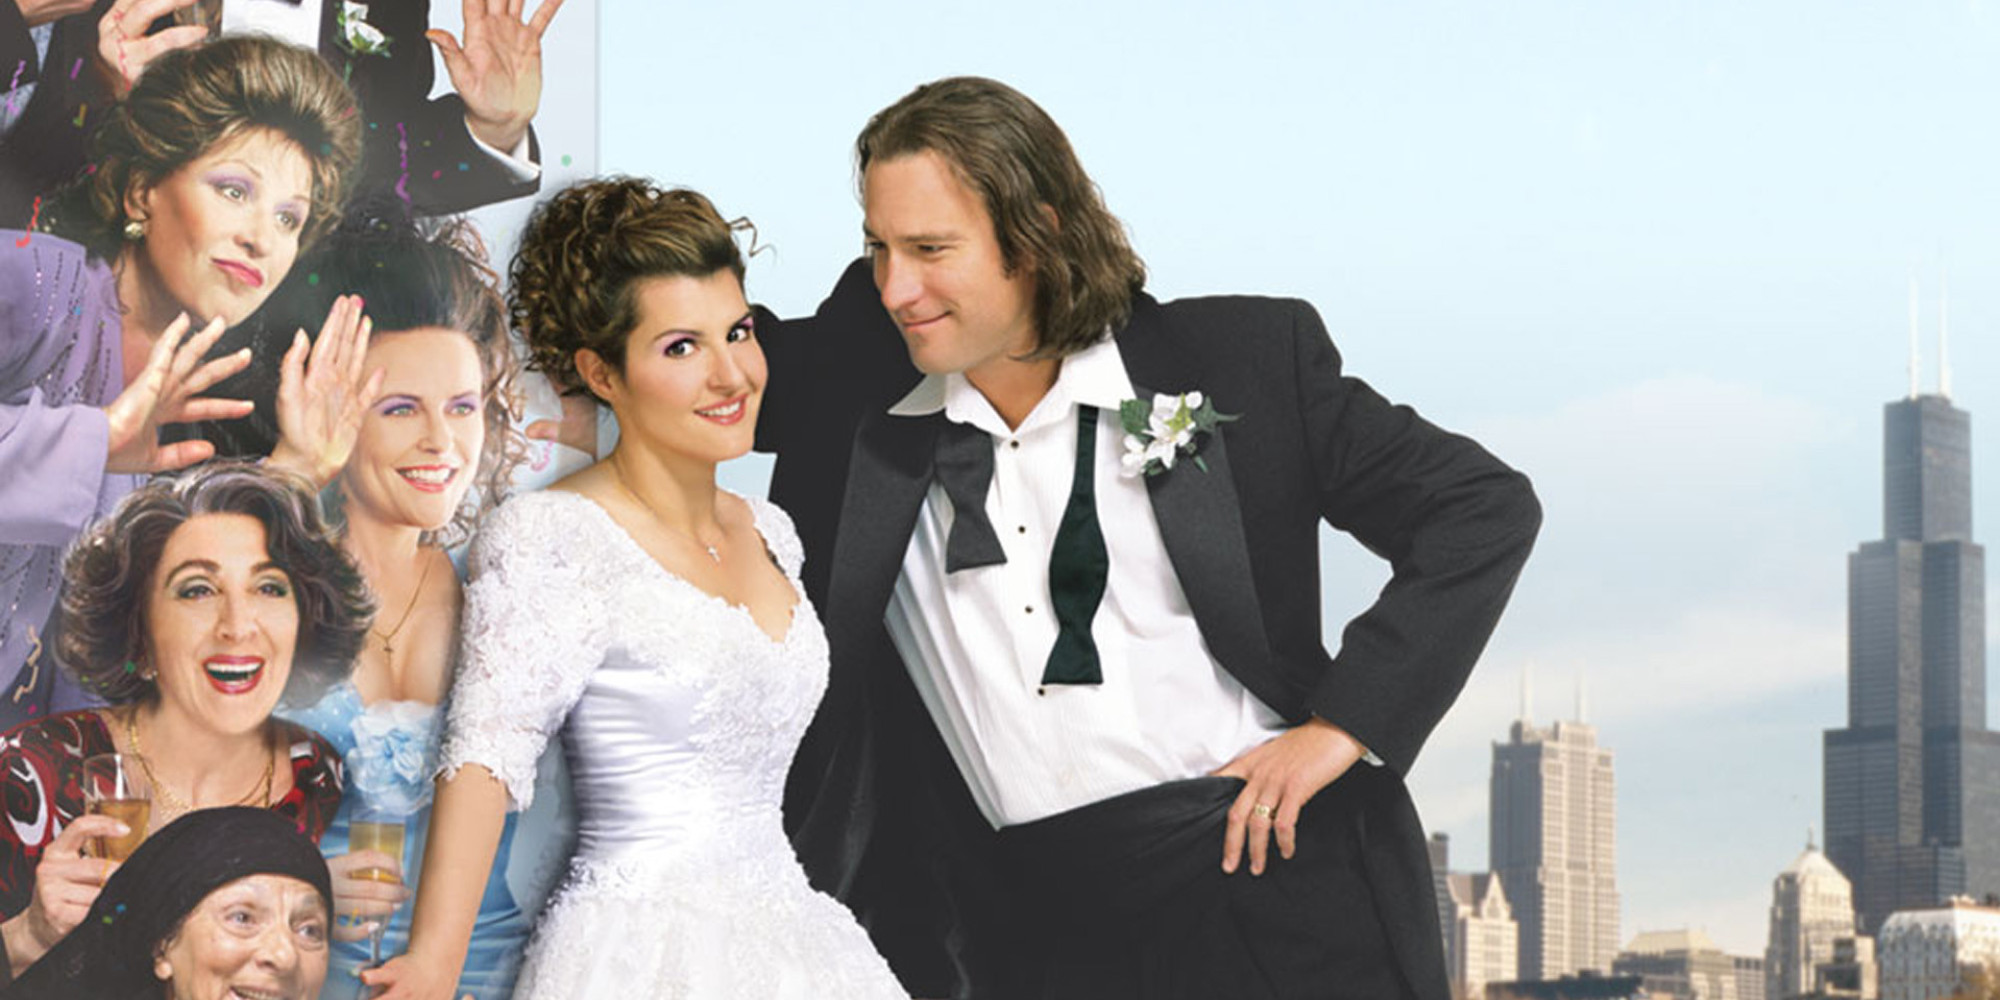 my big fat greek wedding sequel in the works from nia vardalos   my big fat greek wedding sequel in the works from nia vardalos huffpost